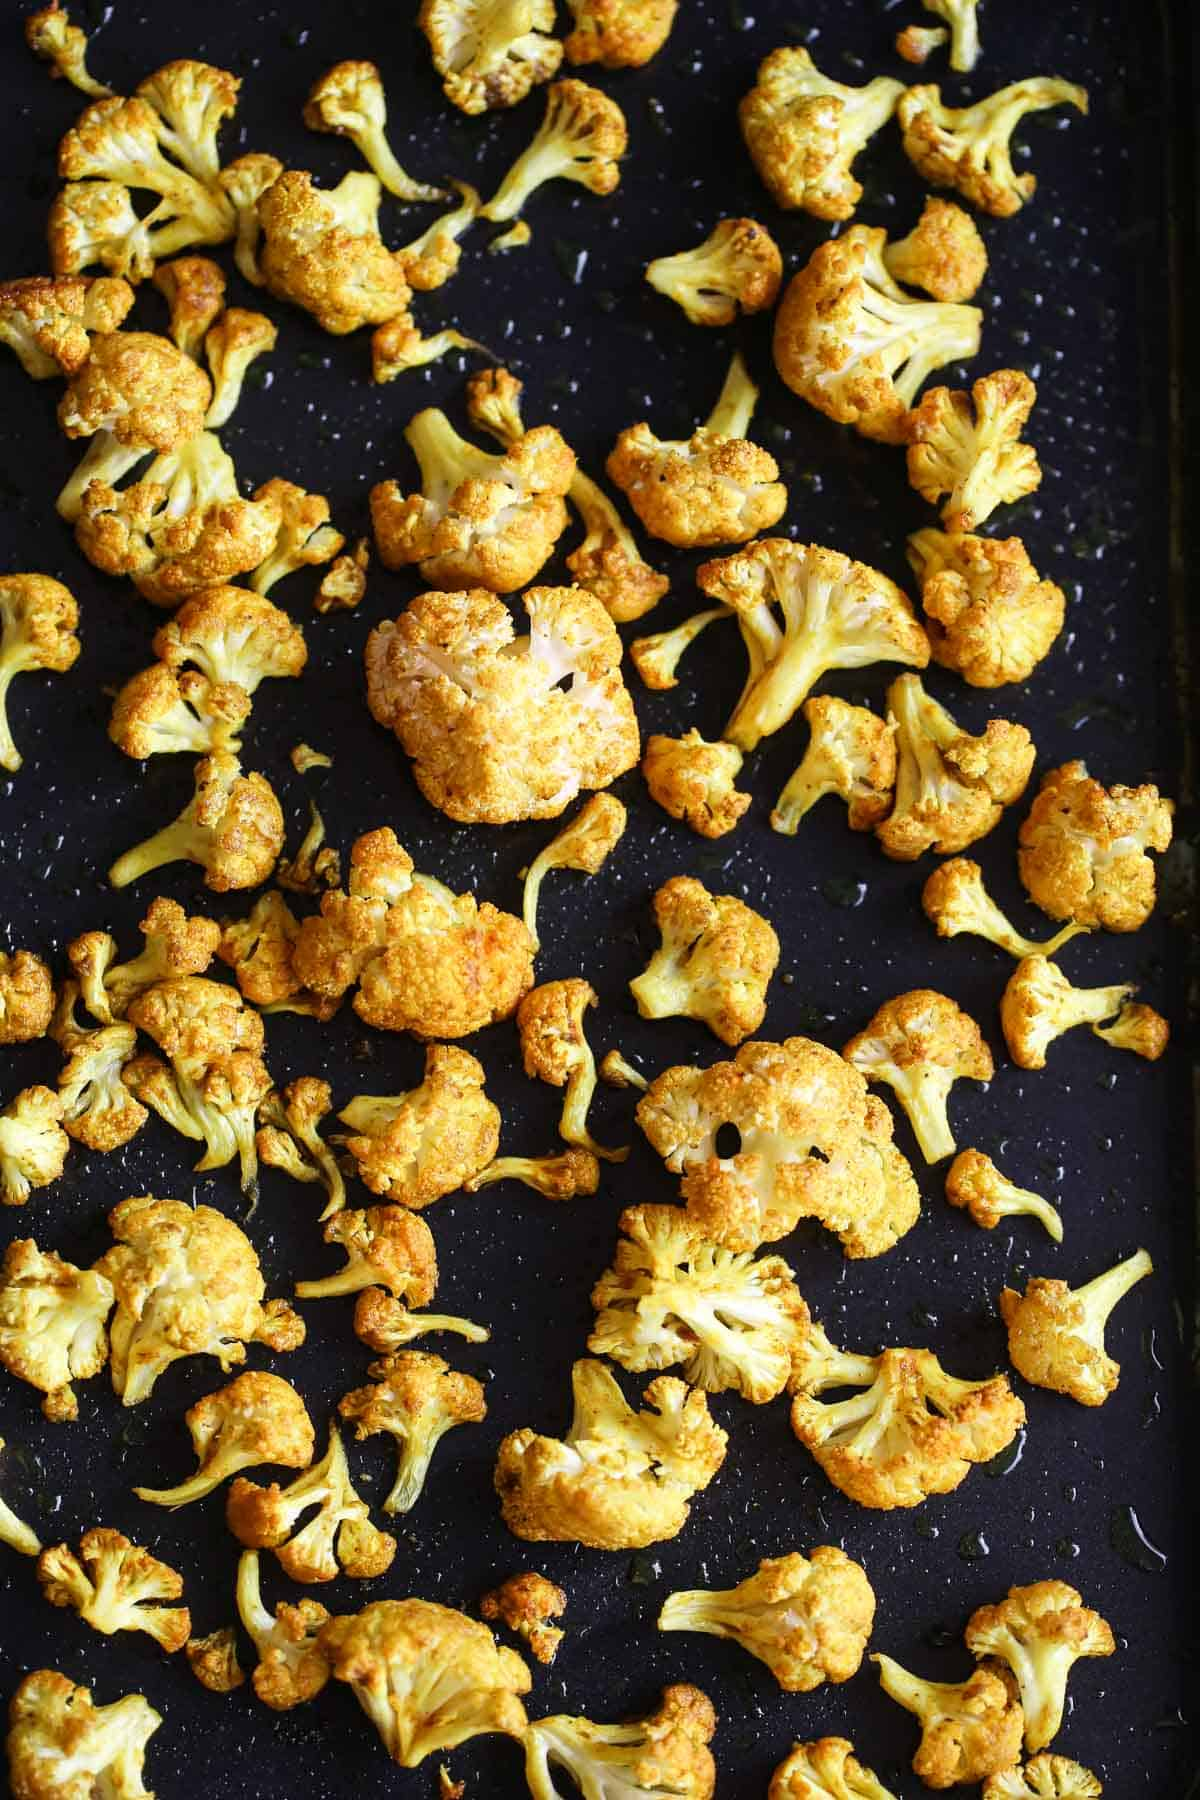 Roasted cauliflower florets for the soup